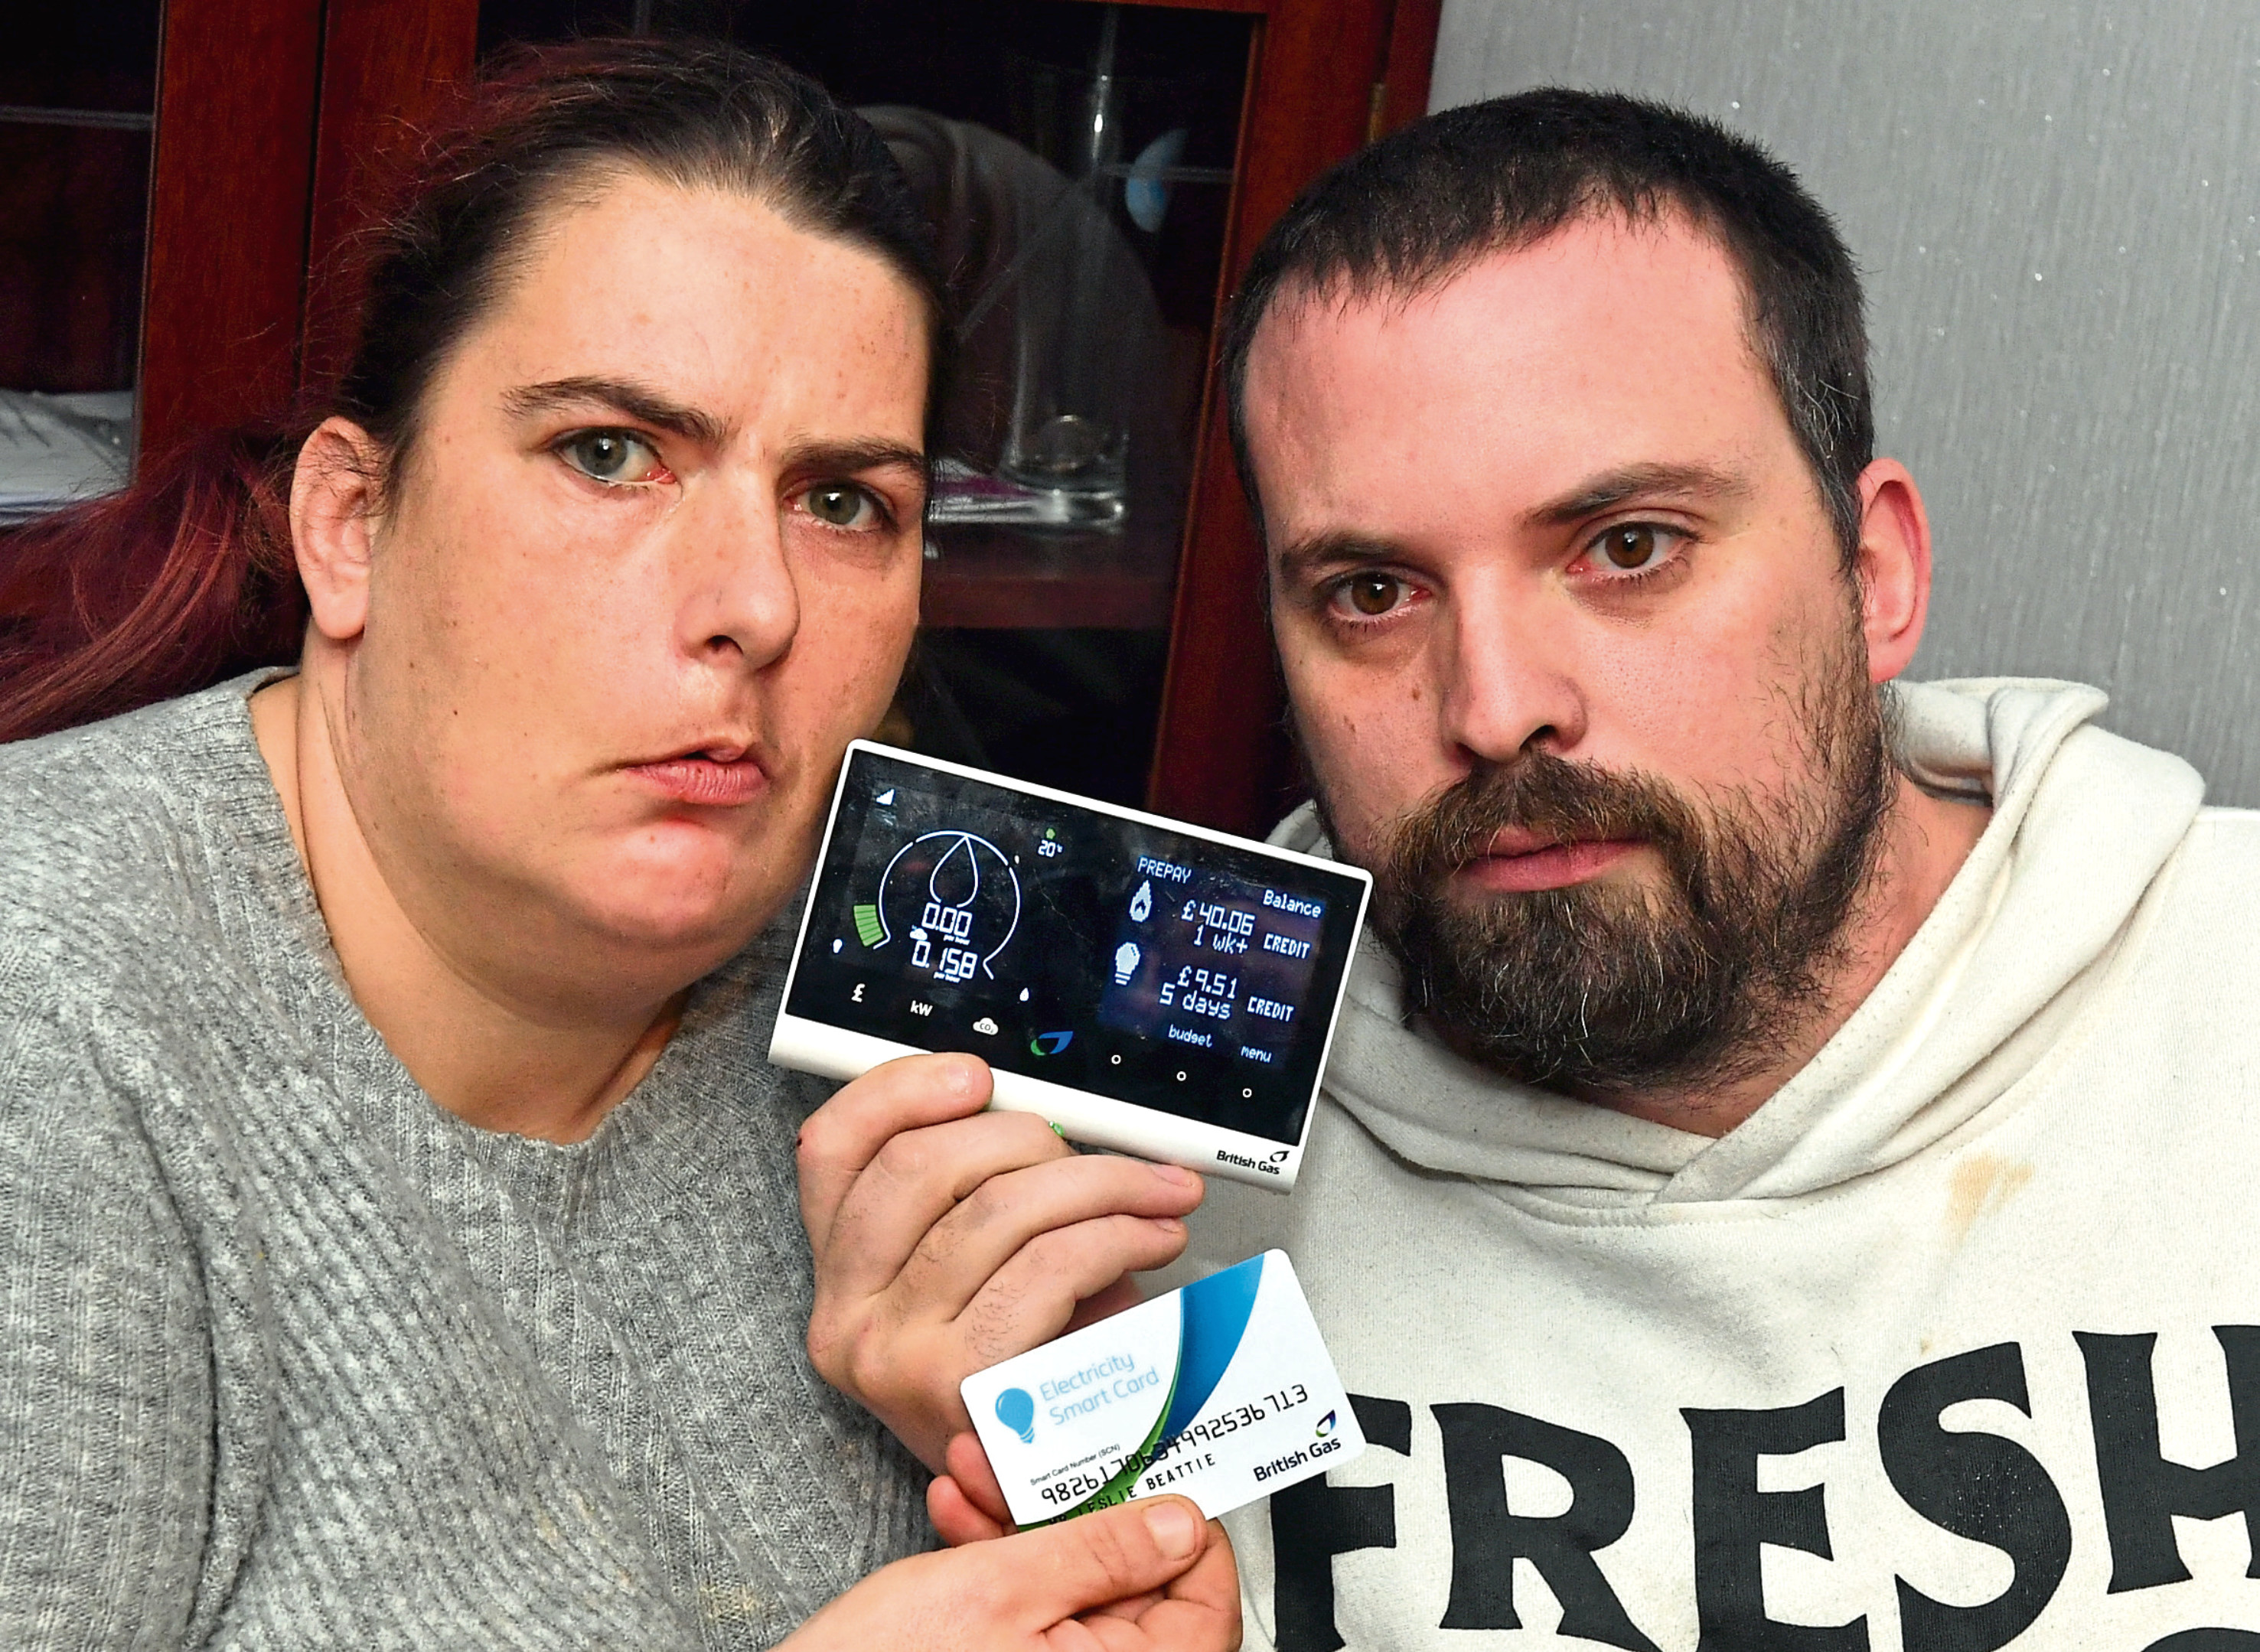 British Gas has apologised to Cheryl and Leslie Beattie, who were left without power due to problems with topping up their new smart meter.